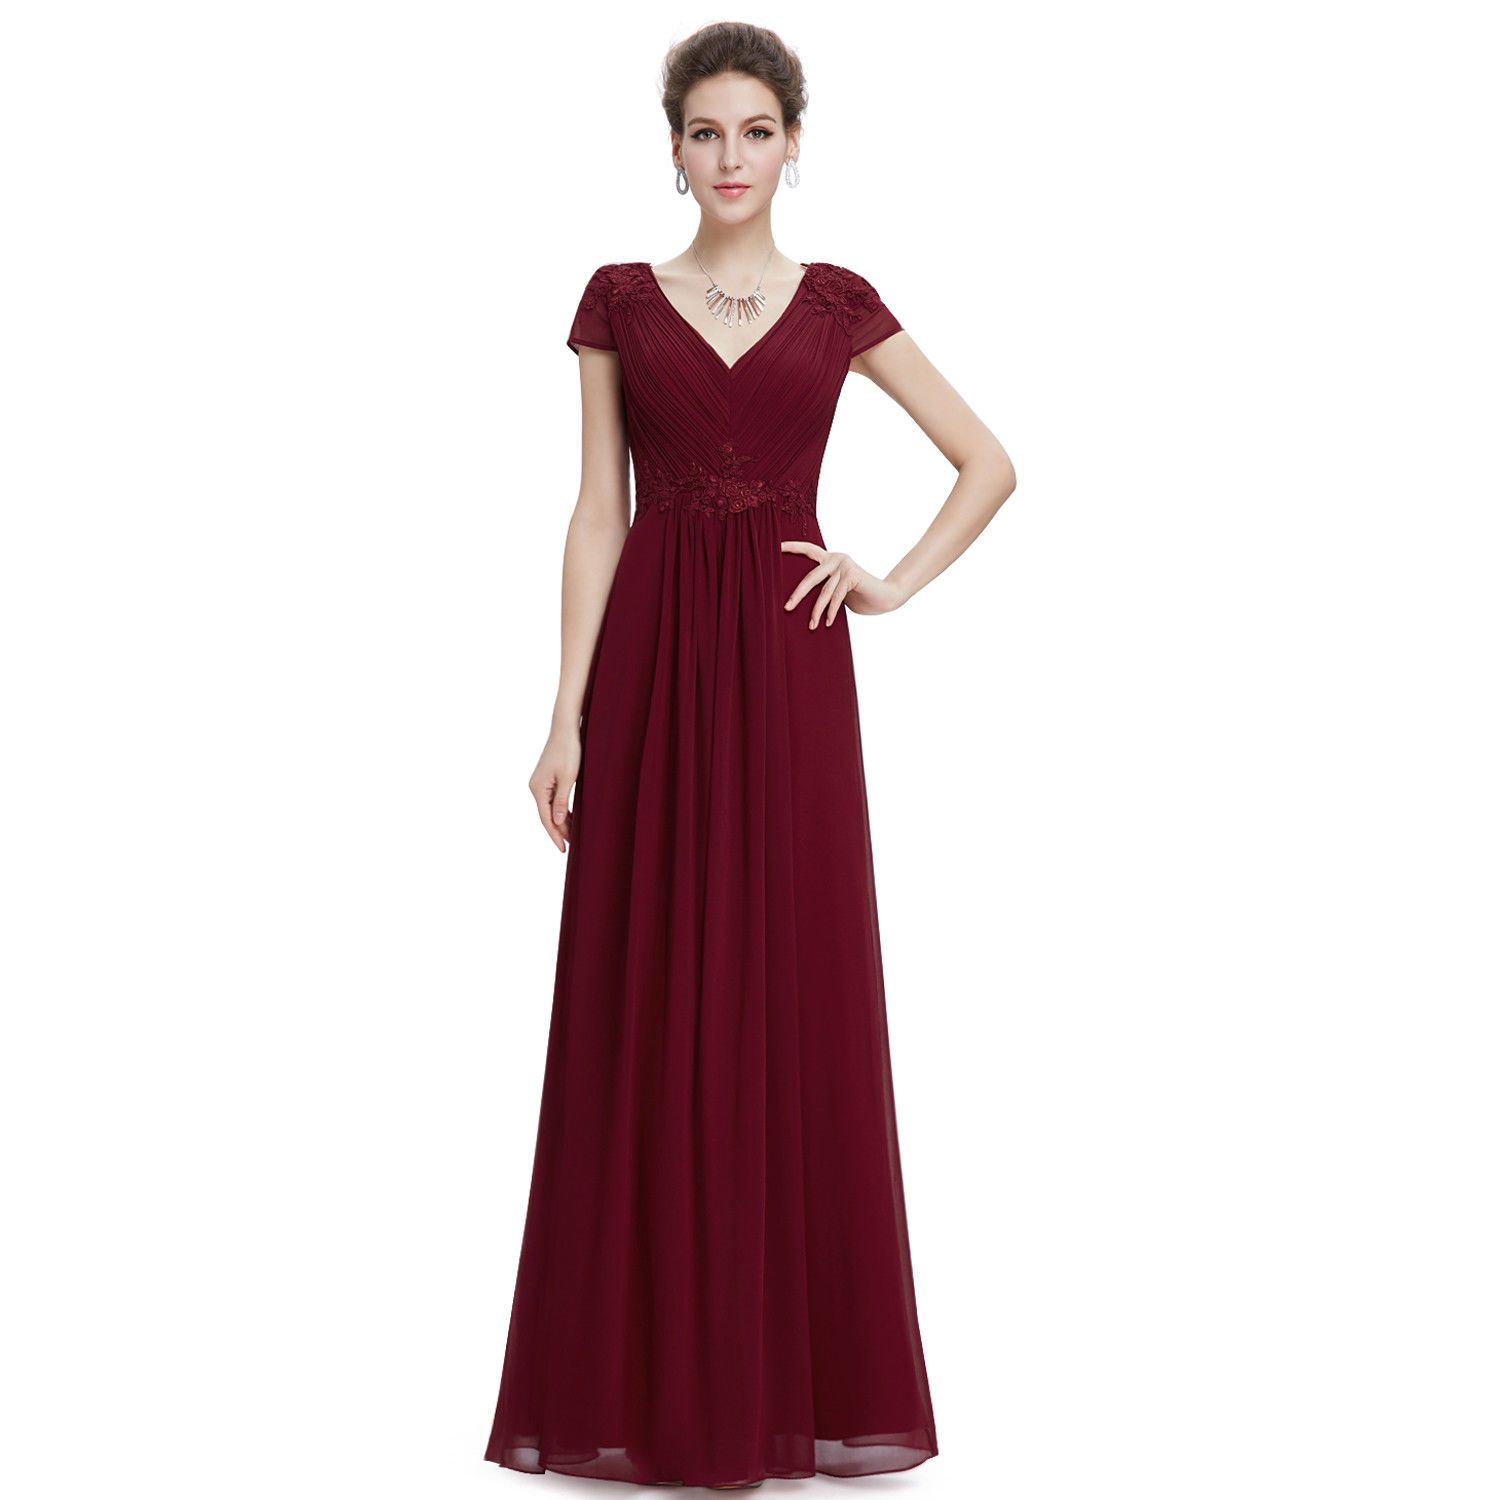 Awesome great everpretty women sexy evening dress v neck formal